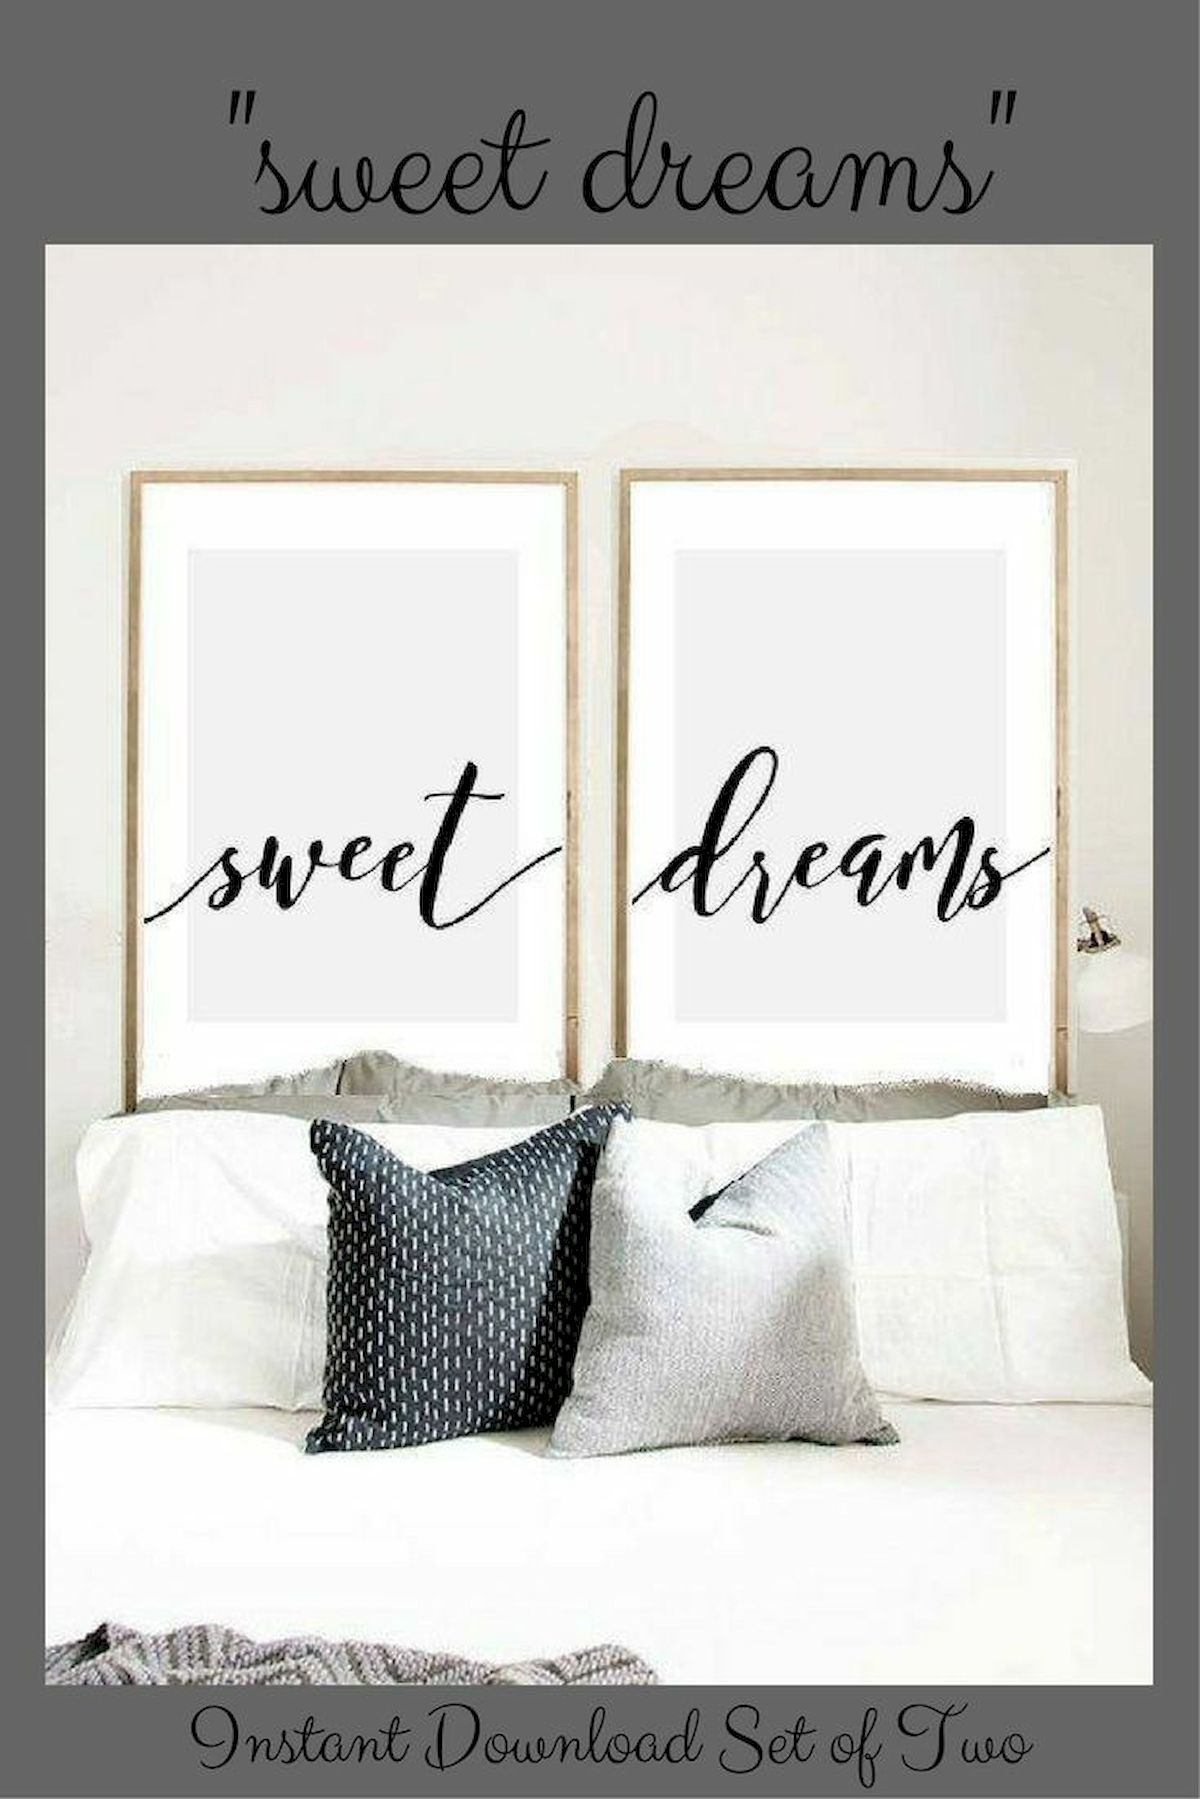 70 Simple Wall Bedroom Decor and Design Ideas (41)